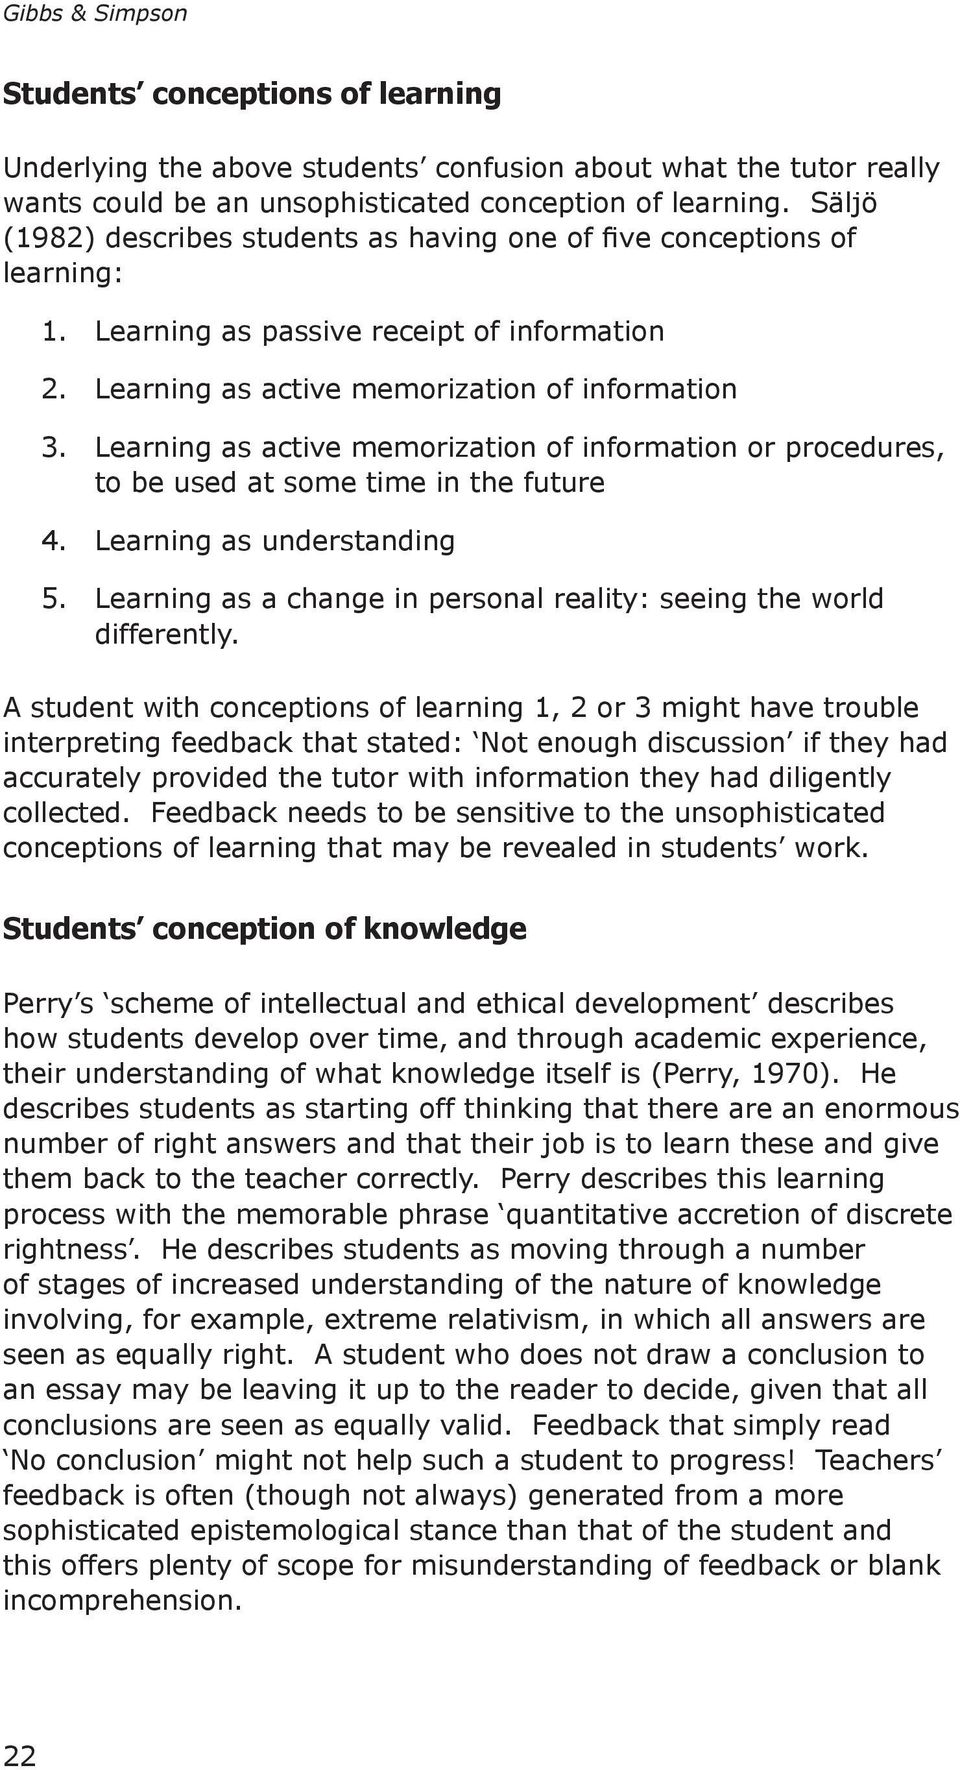 Learning as active memorization of information or procedures, to be used at some time in the future 4. Learning as understanding 5.